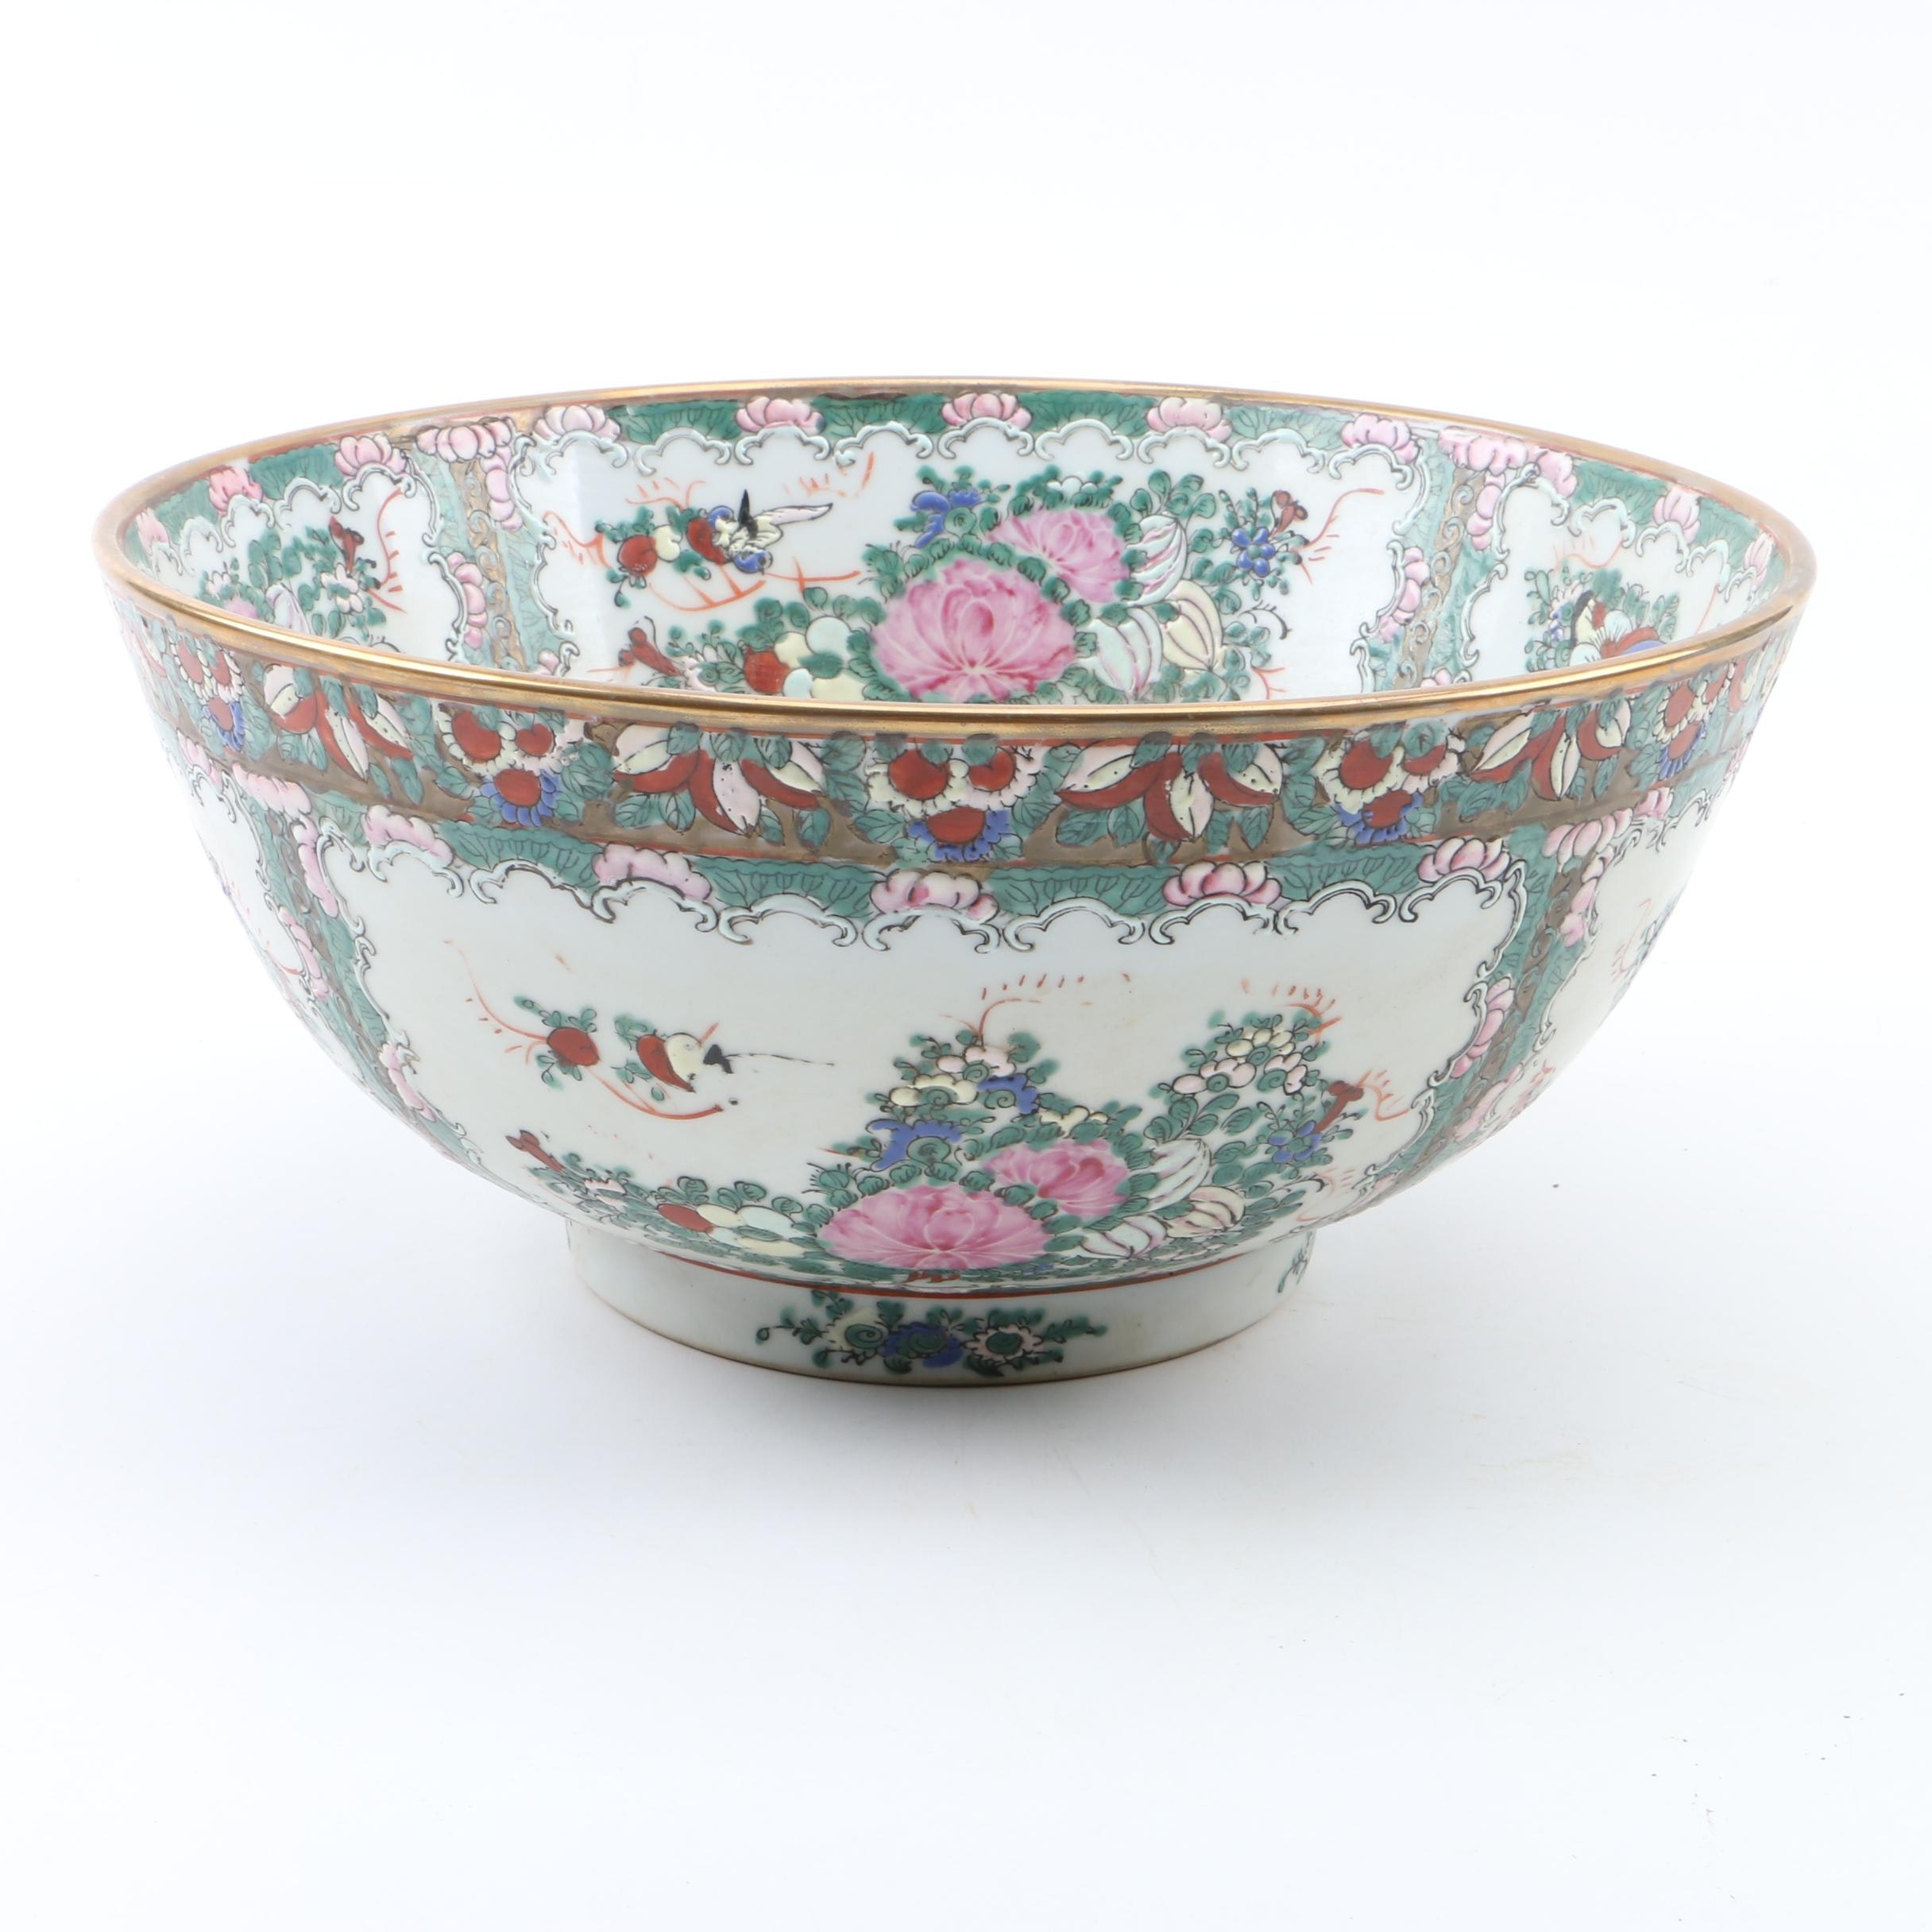 Chinese Rose Canton Porcelain Bowl by Andrea by Sadek